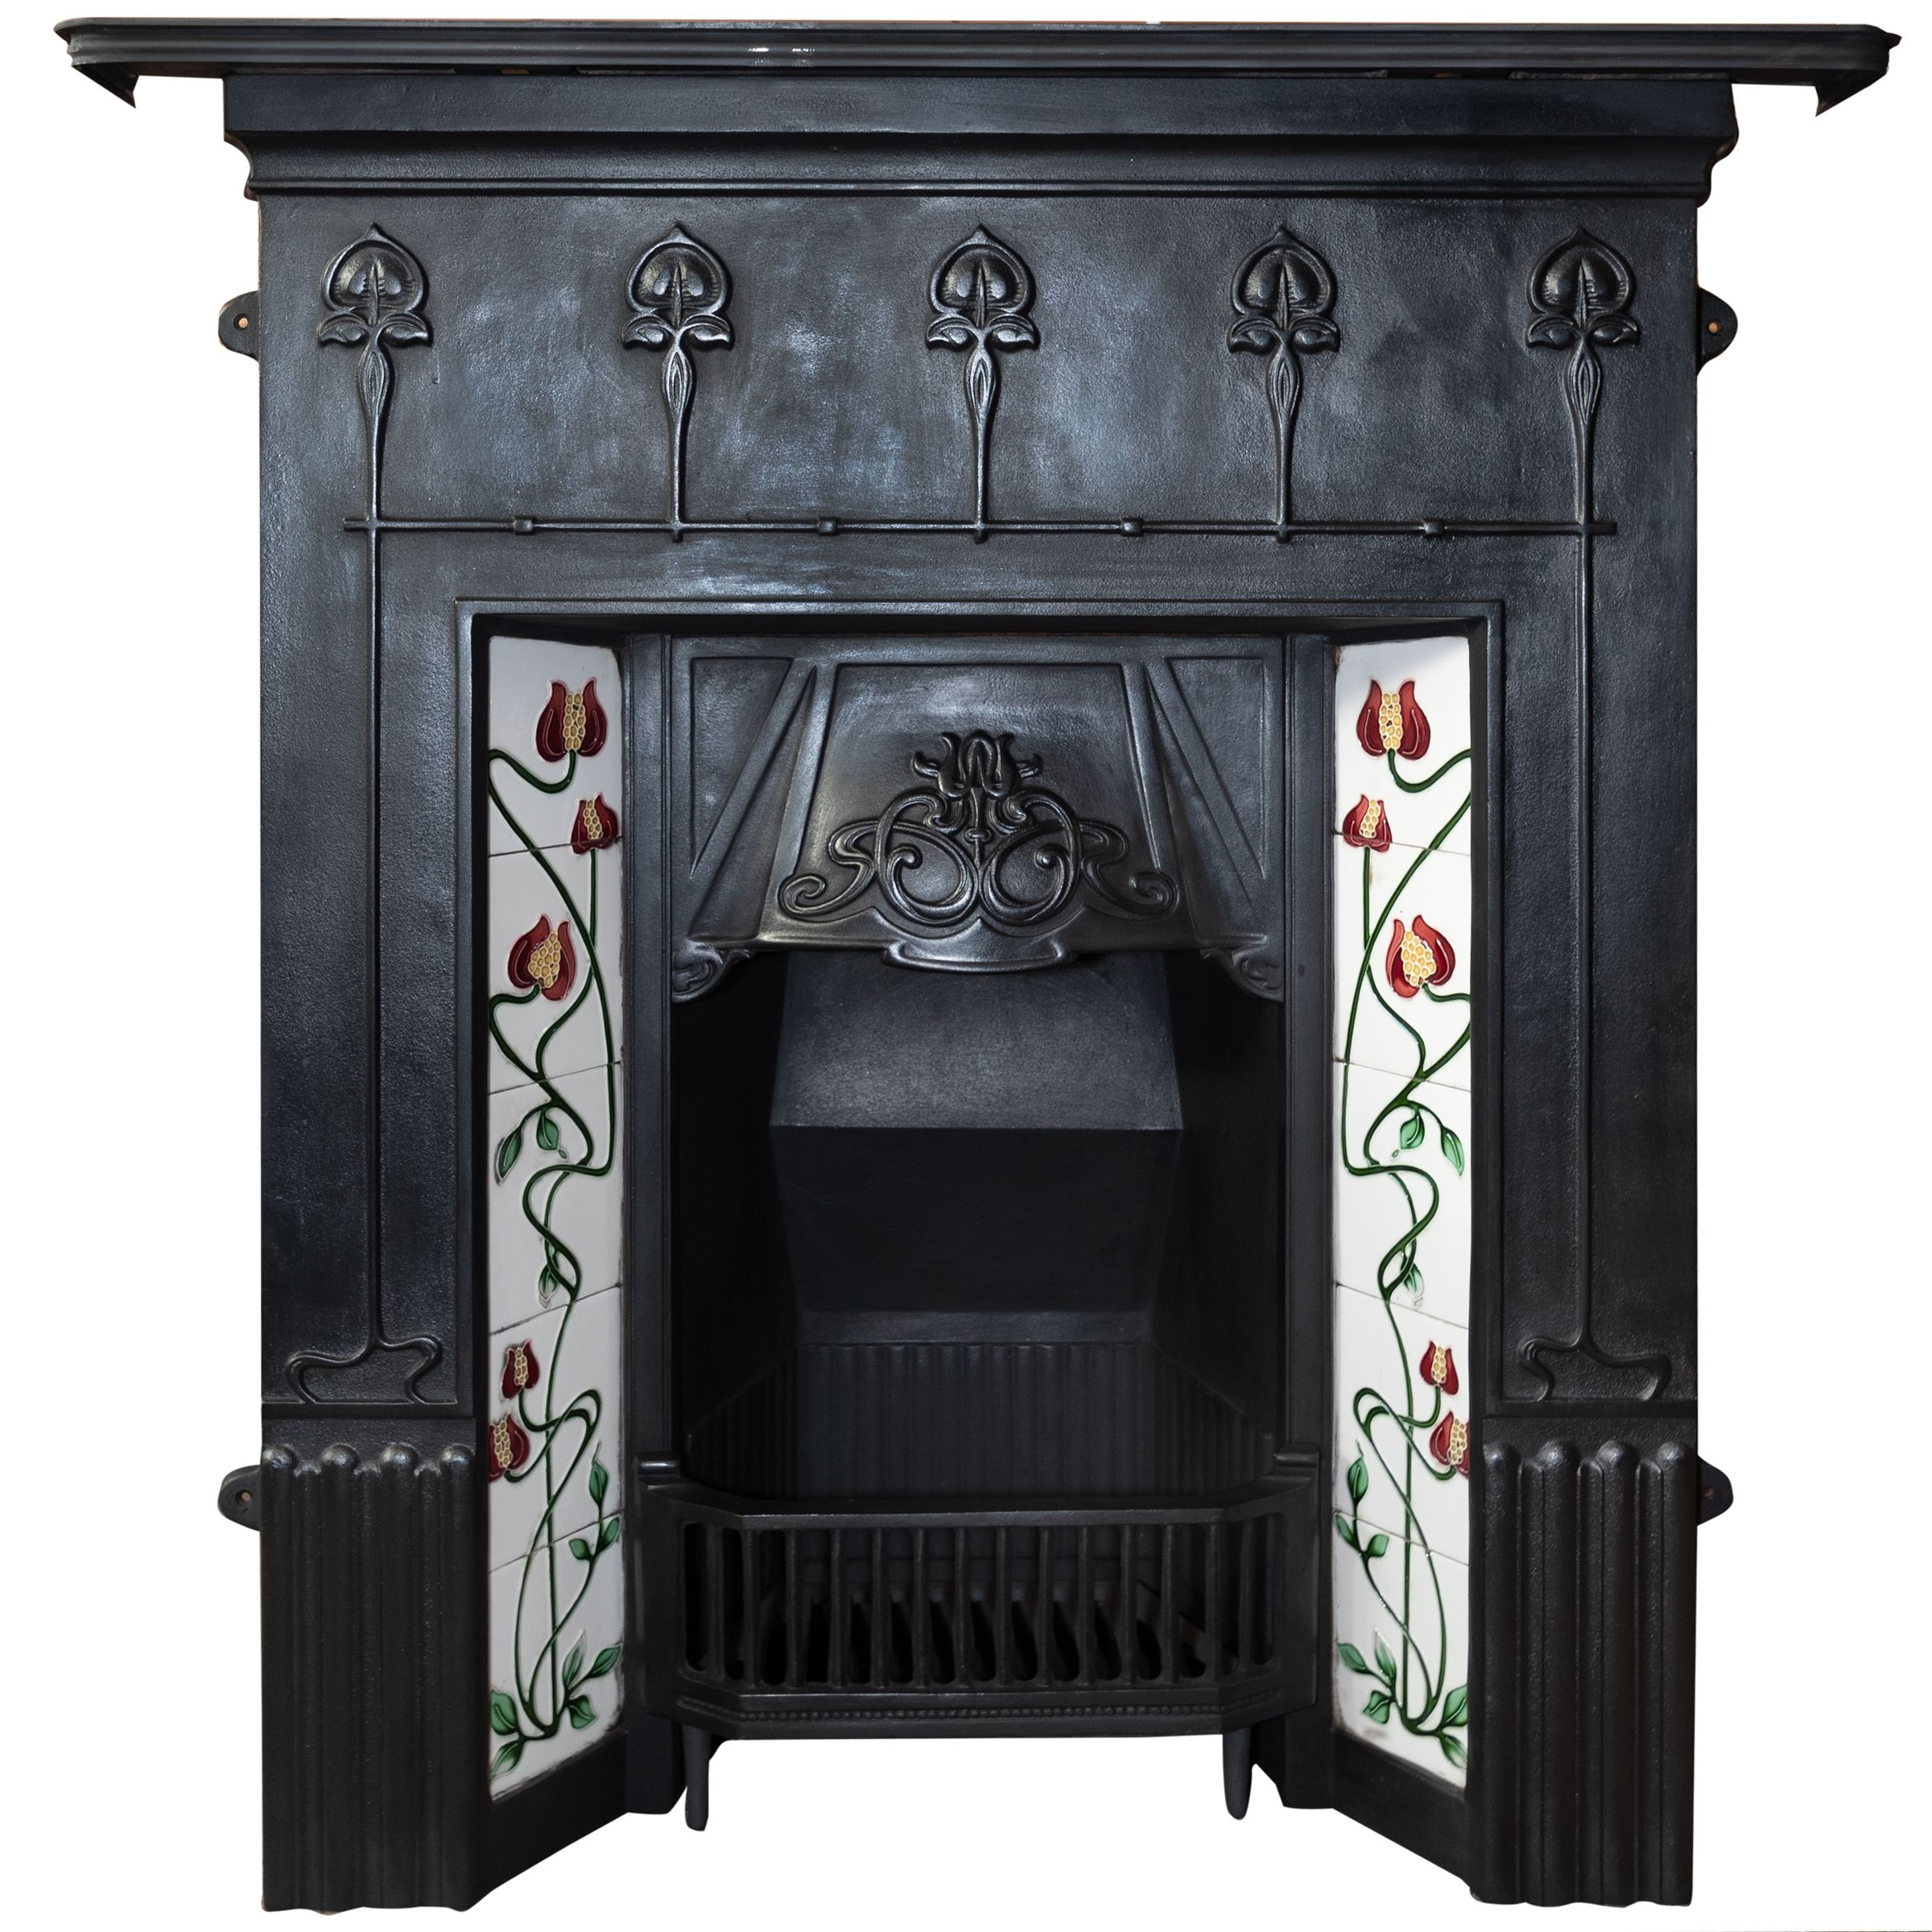 Large Fireplace Grate Beautiful Huge Selection Of Antique Cast Iron Fireplaces Fully